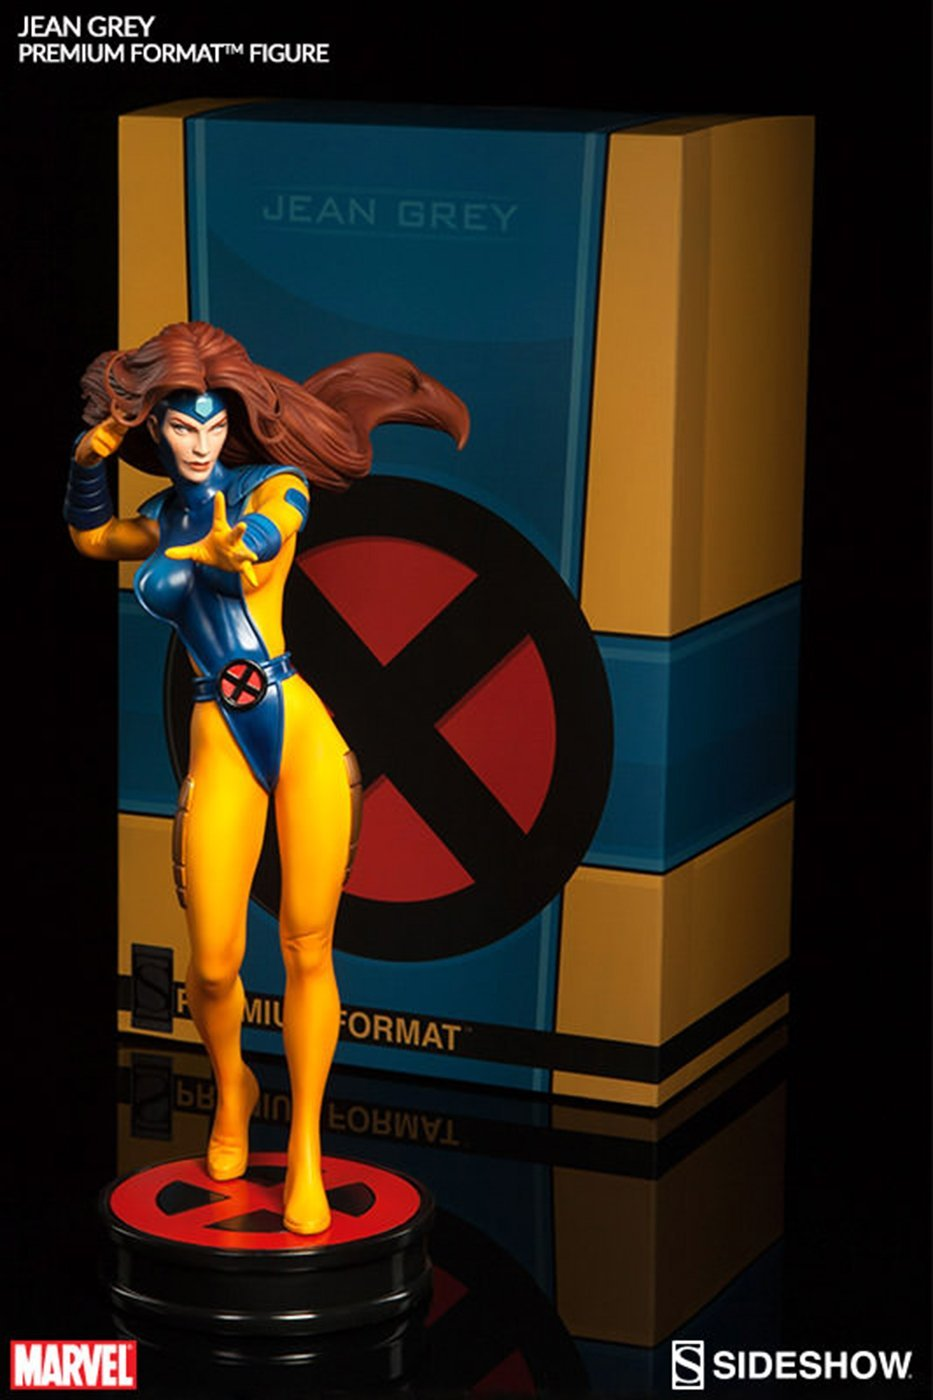 Sideshow Sideshow Marvel Comics X-Men Jean Grey Premium Format Figure Statue *MARVEL SAMPLE*